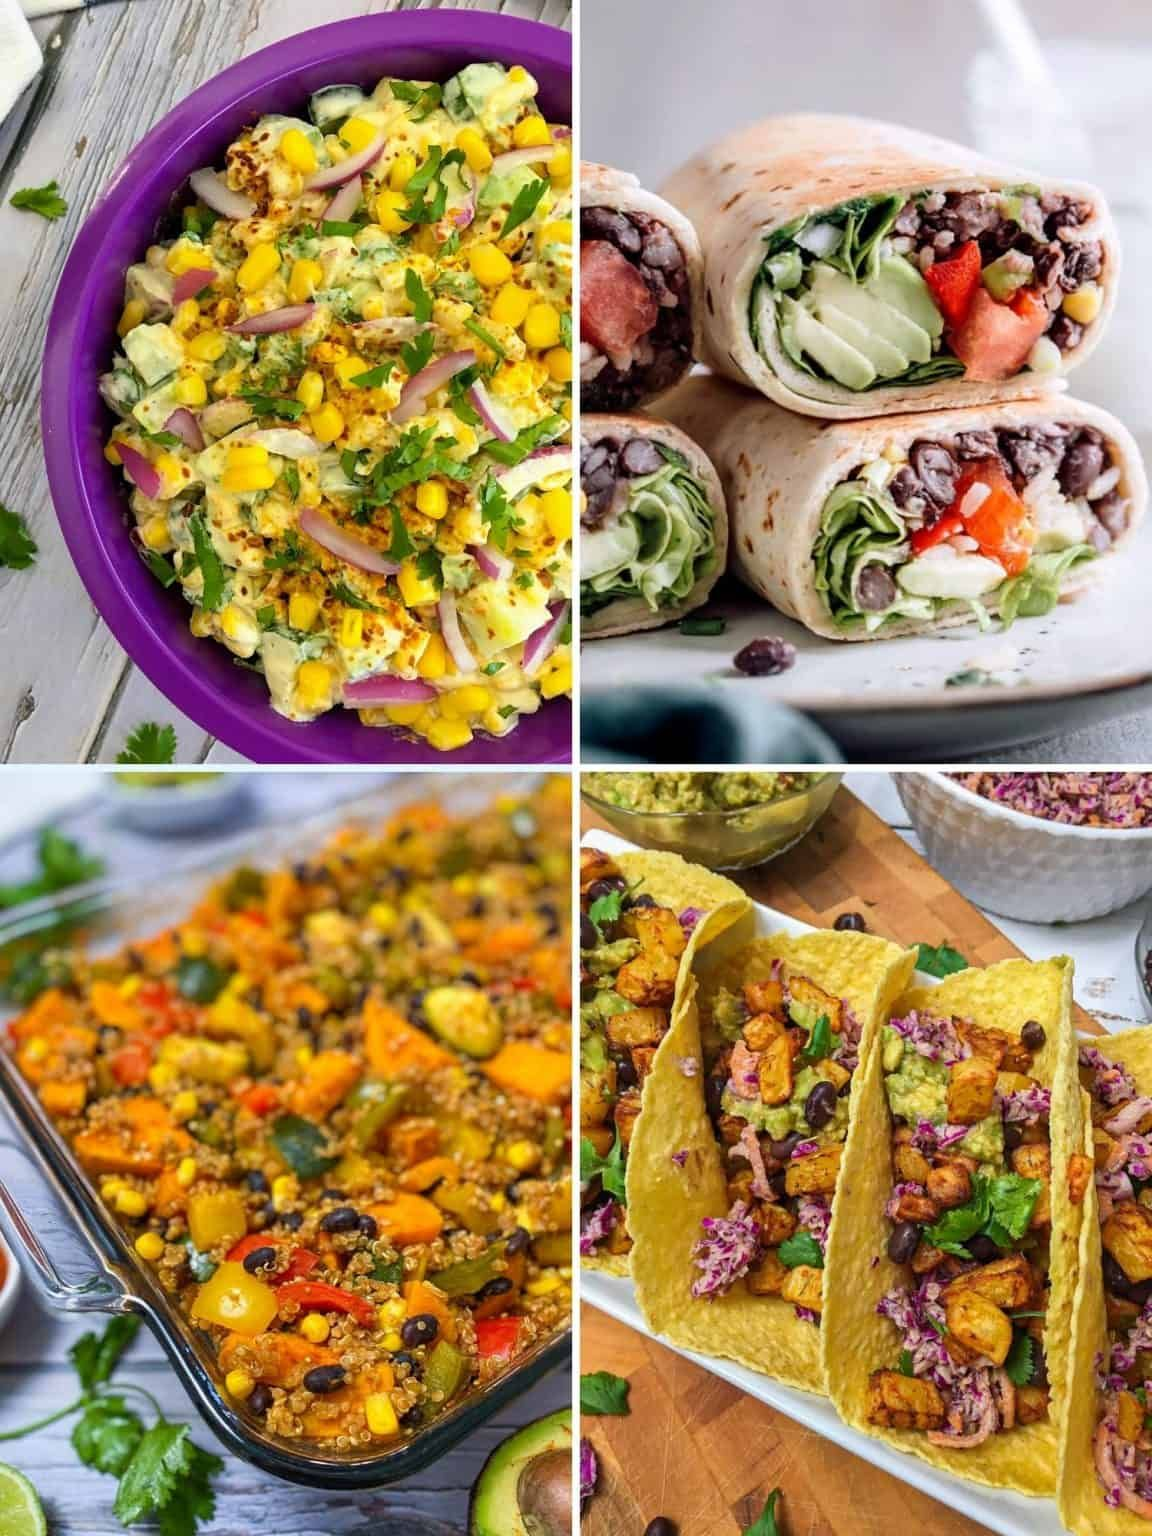 gluten free mexican food options